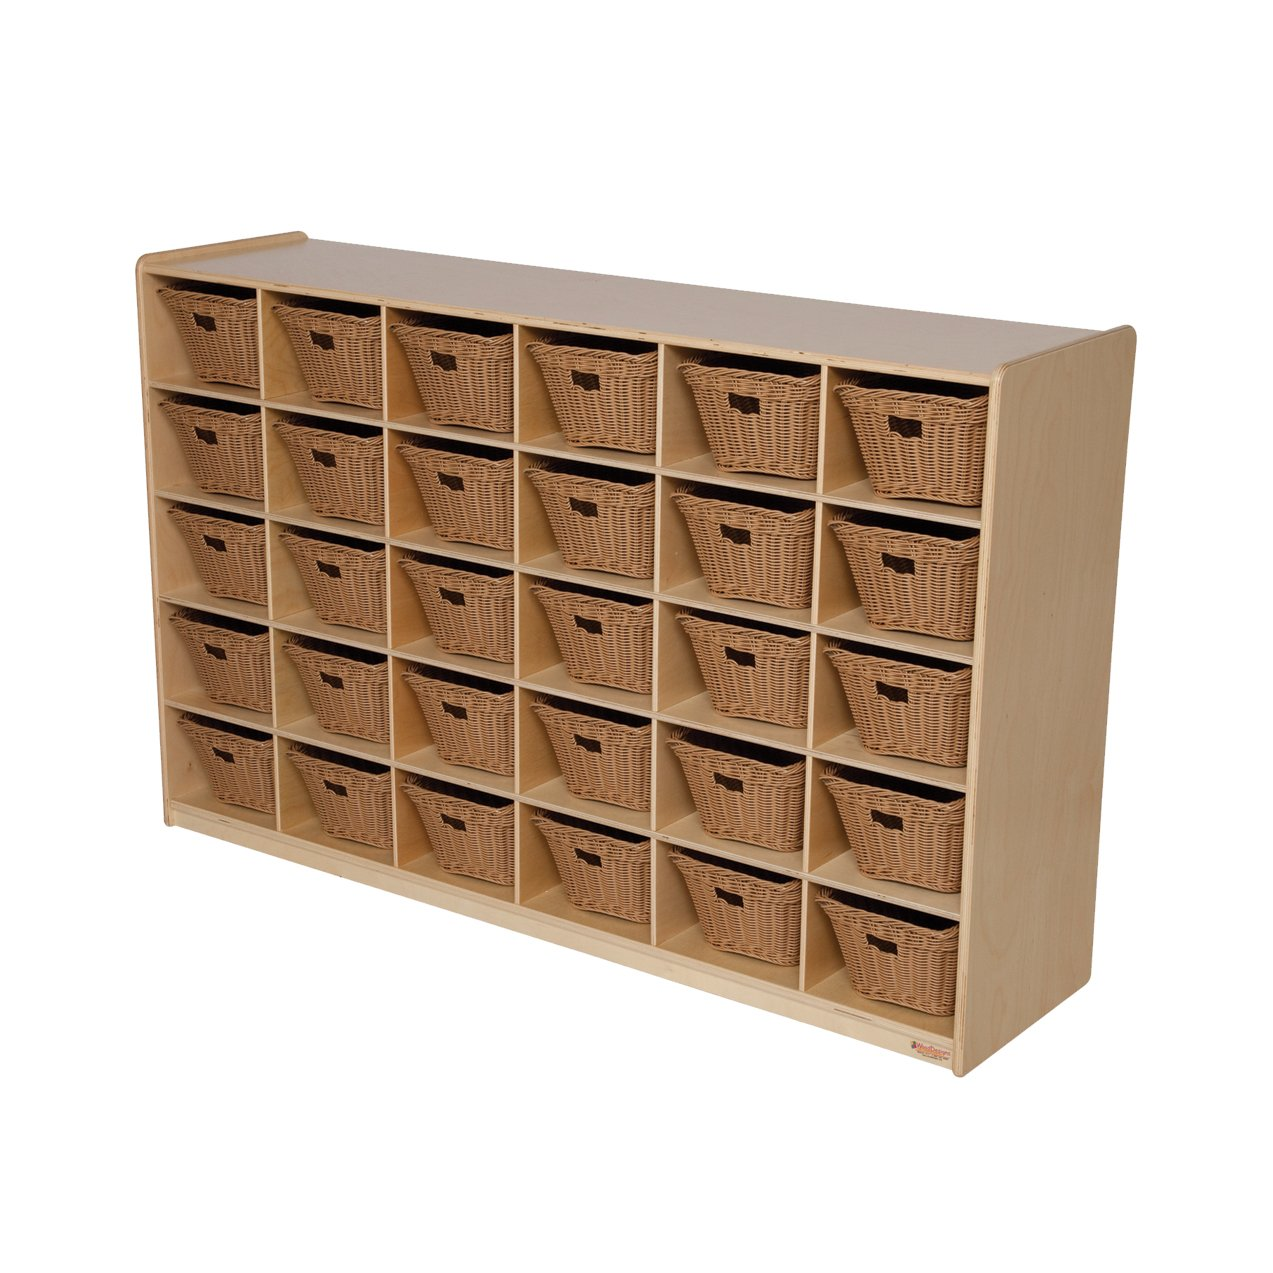 Natural Environments WD16039-718 30 Tray Storage with Baskets